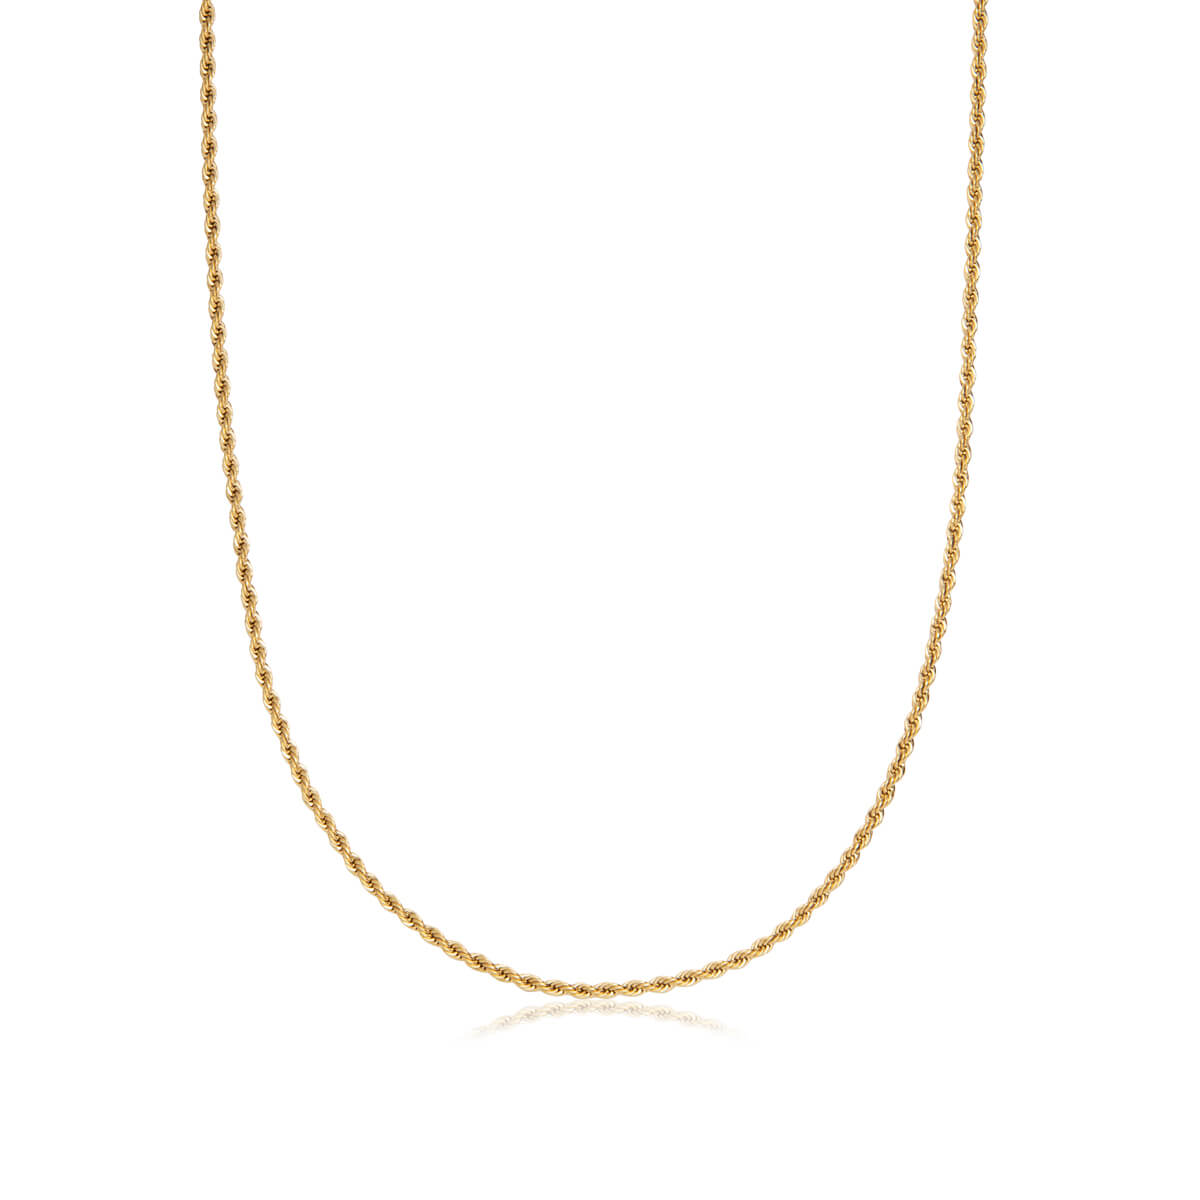 Selected Rope Chain Necklace 20 in (Brass)